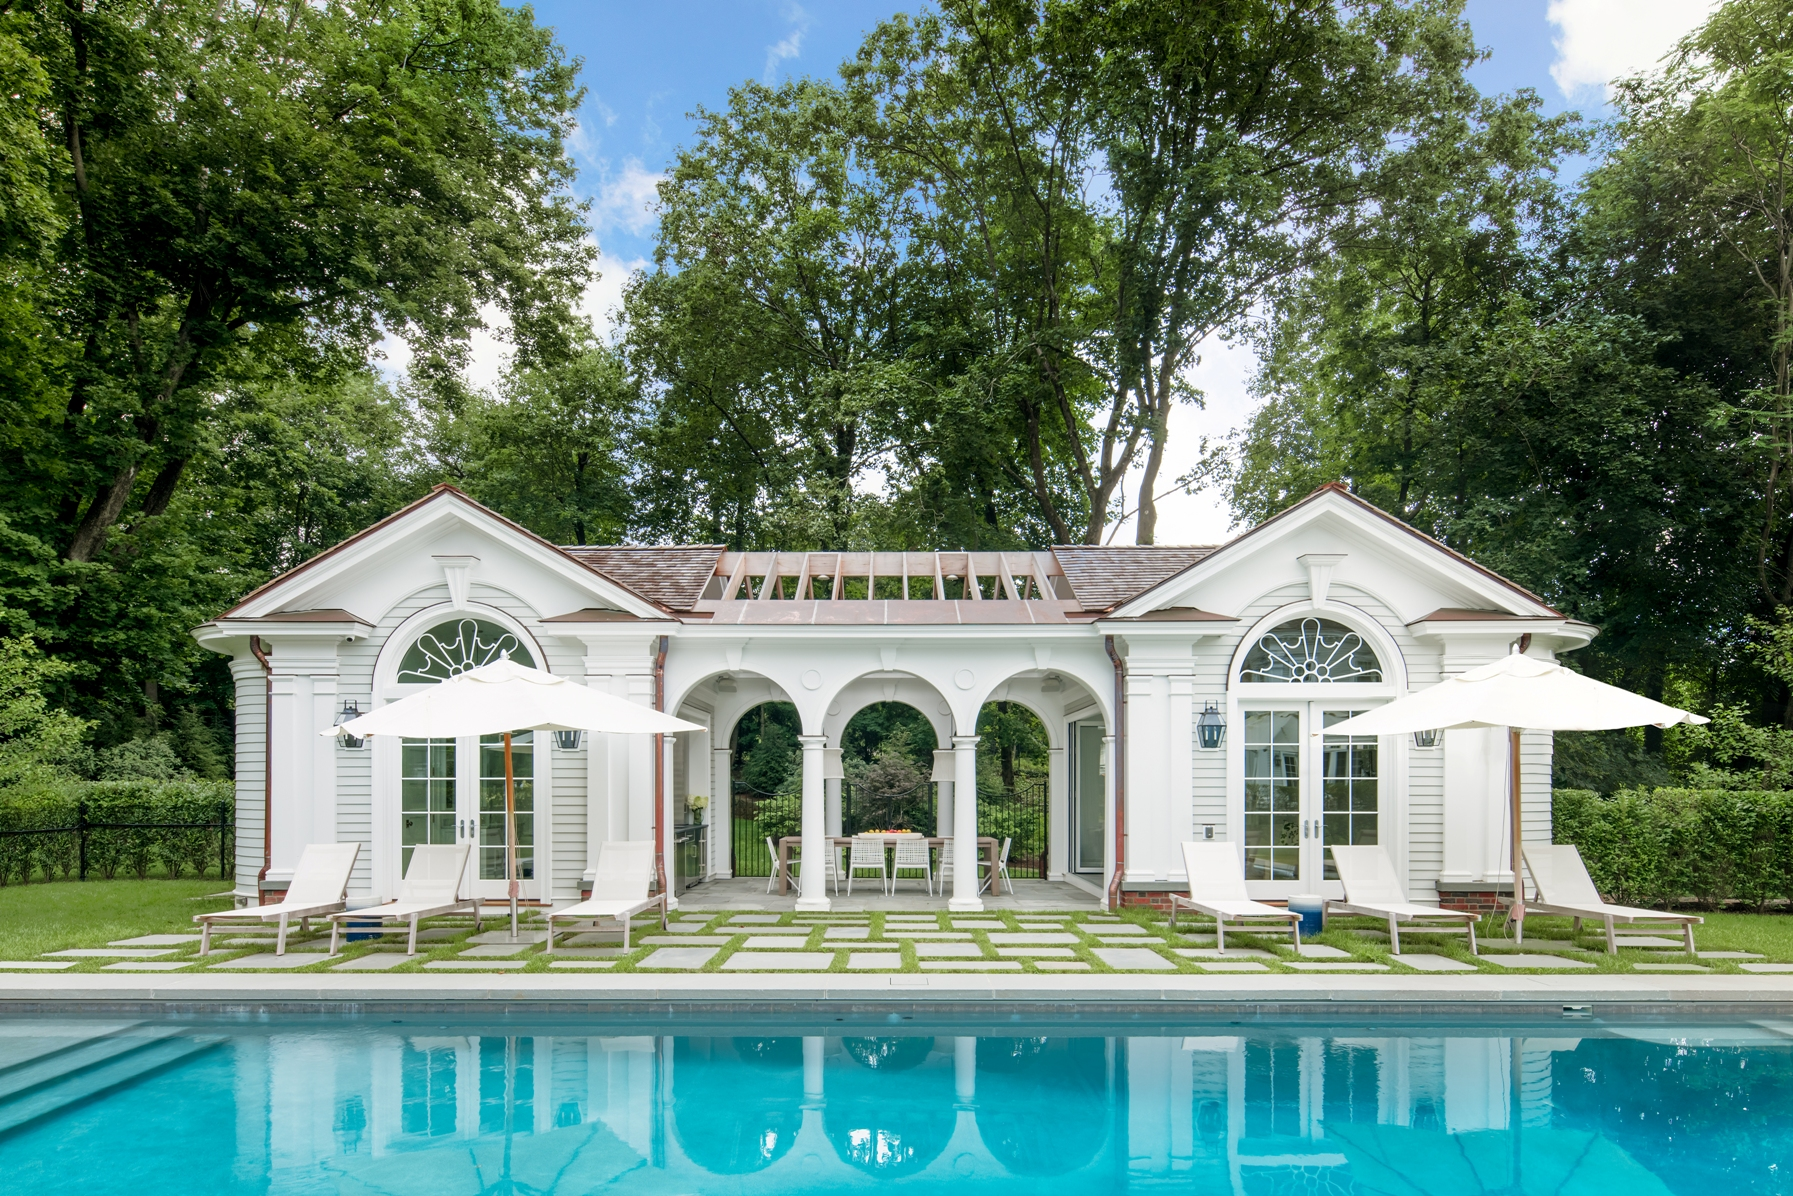 WTARCA_Woodruff_Poolhouse_8 small.jpg